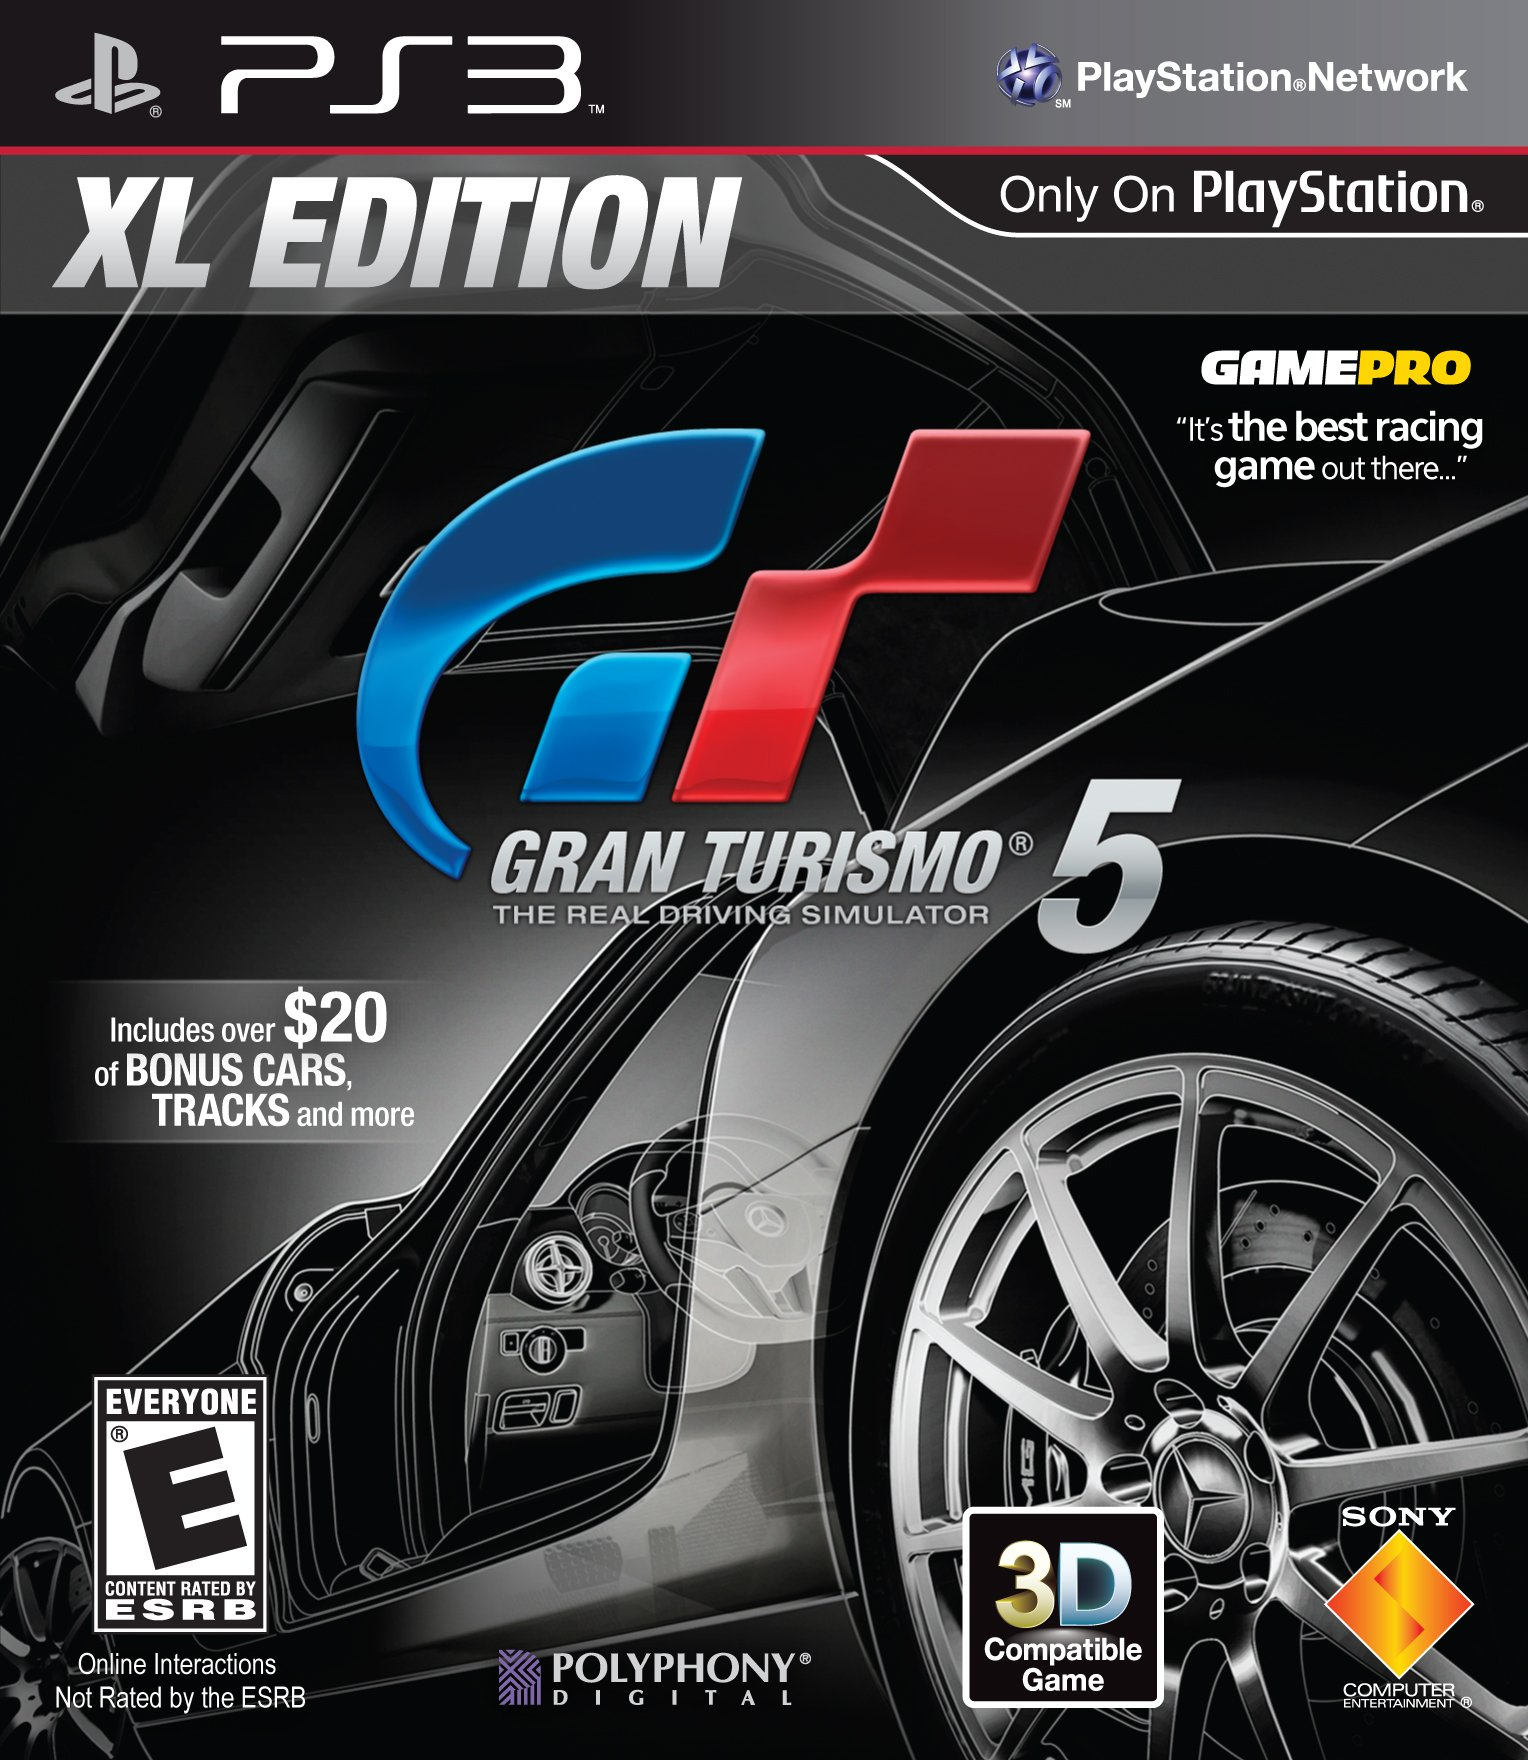 PS3 : Gran Turismo 5 XL Edition